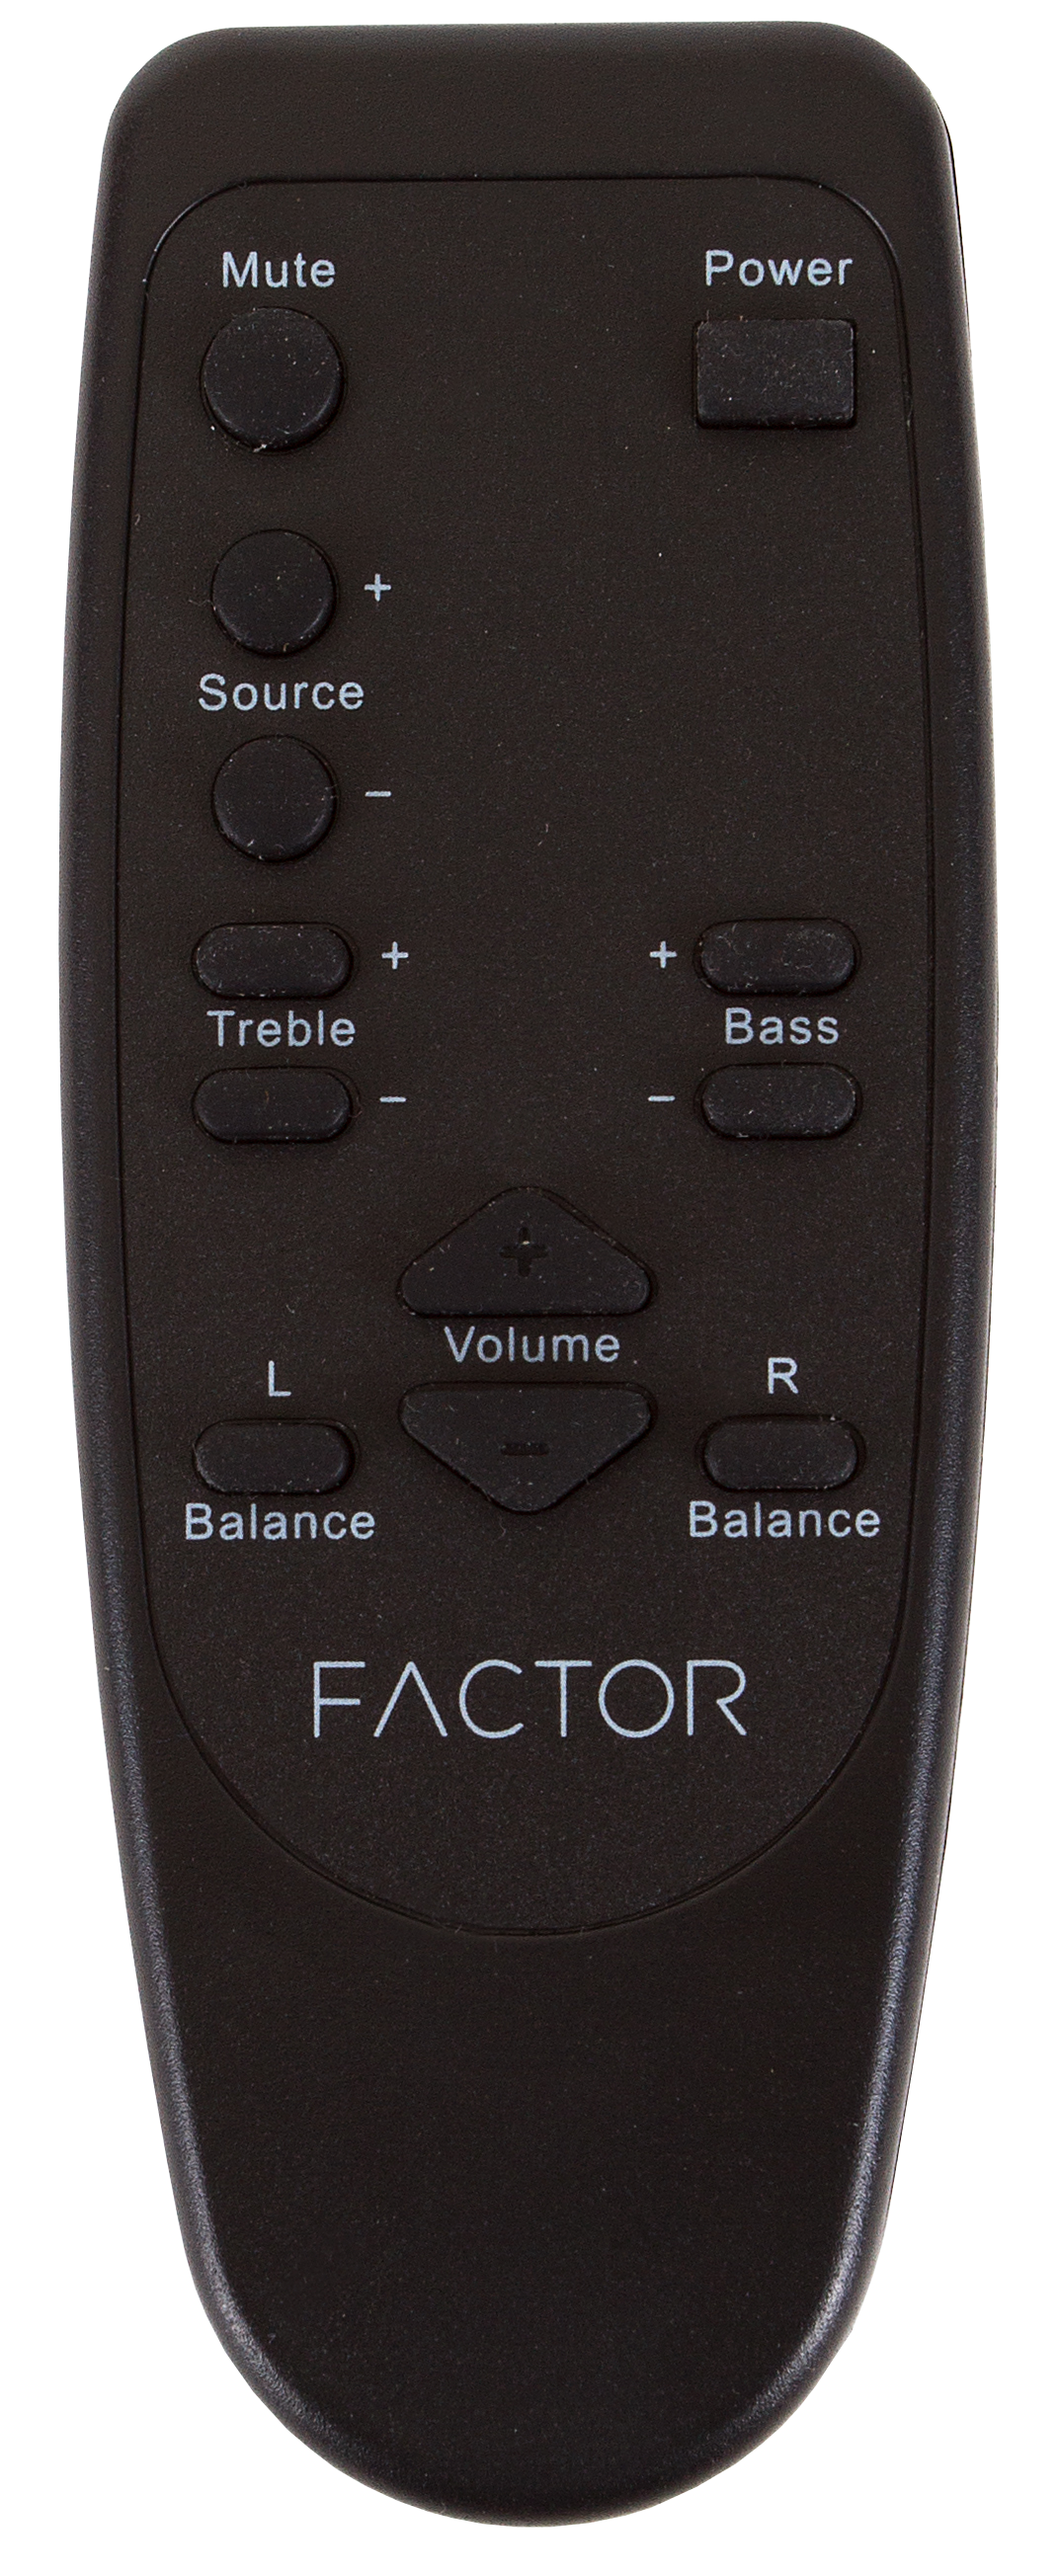 FACTOR SIX KEYPAD CONTROL KIT FOR X-66-AMP